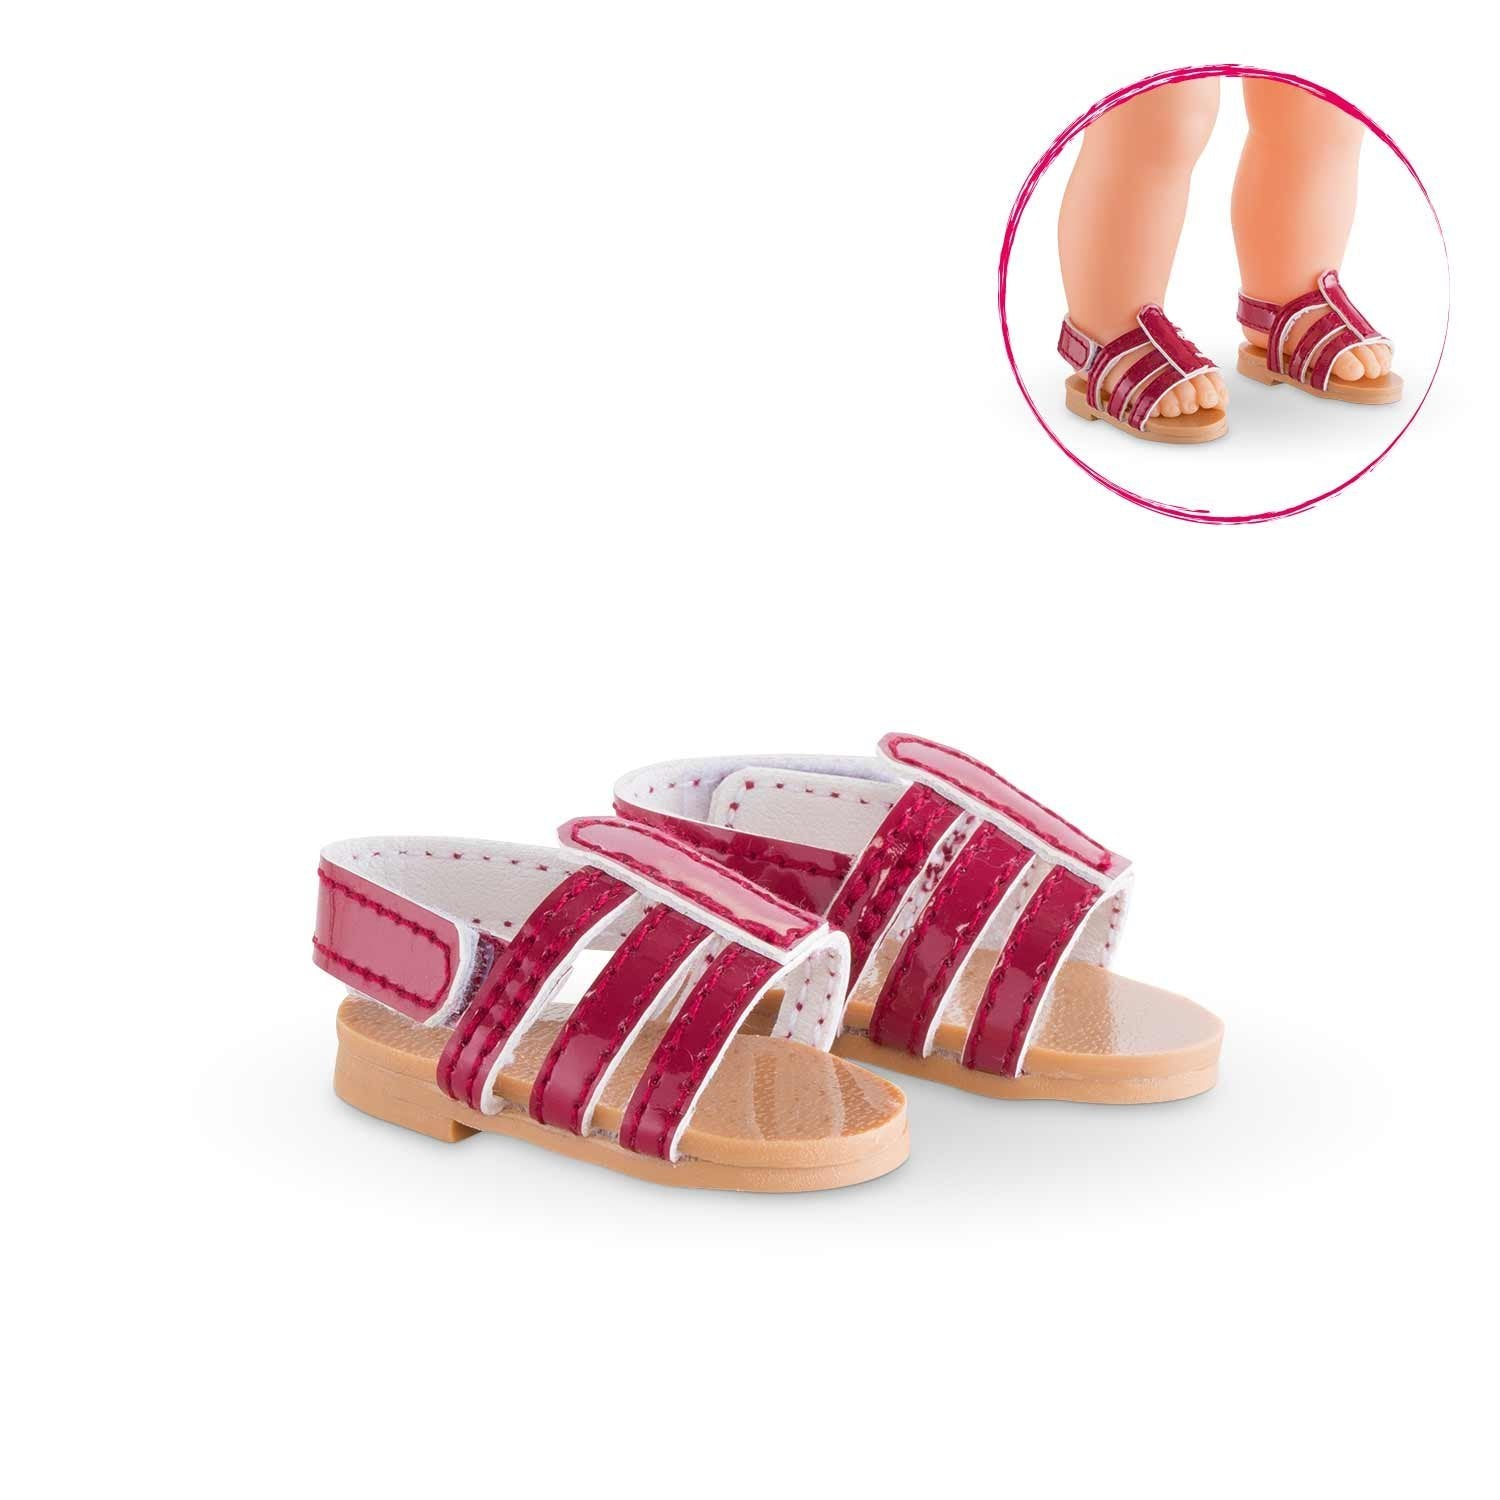 COROLLE MaCorolle - Clothing - Sandals Cherry -  36cm